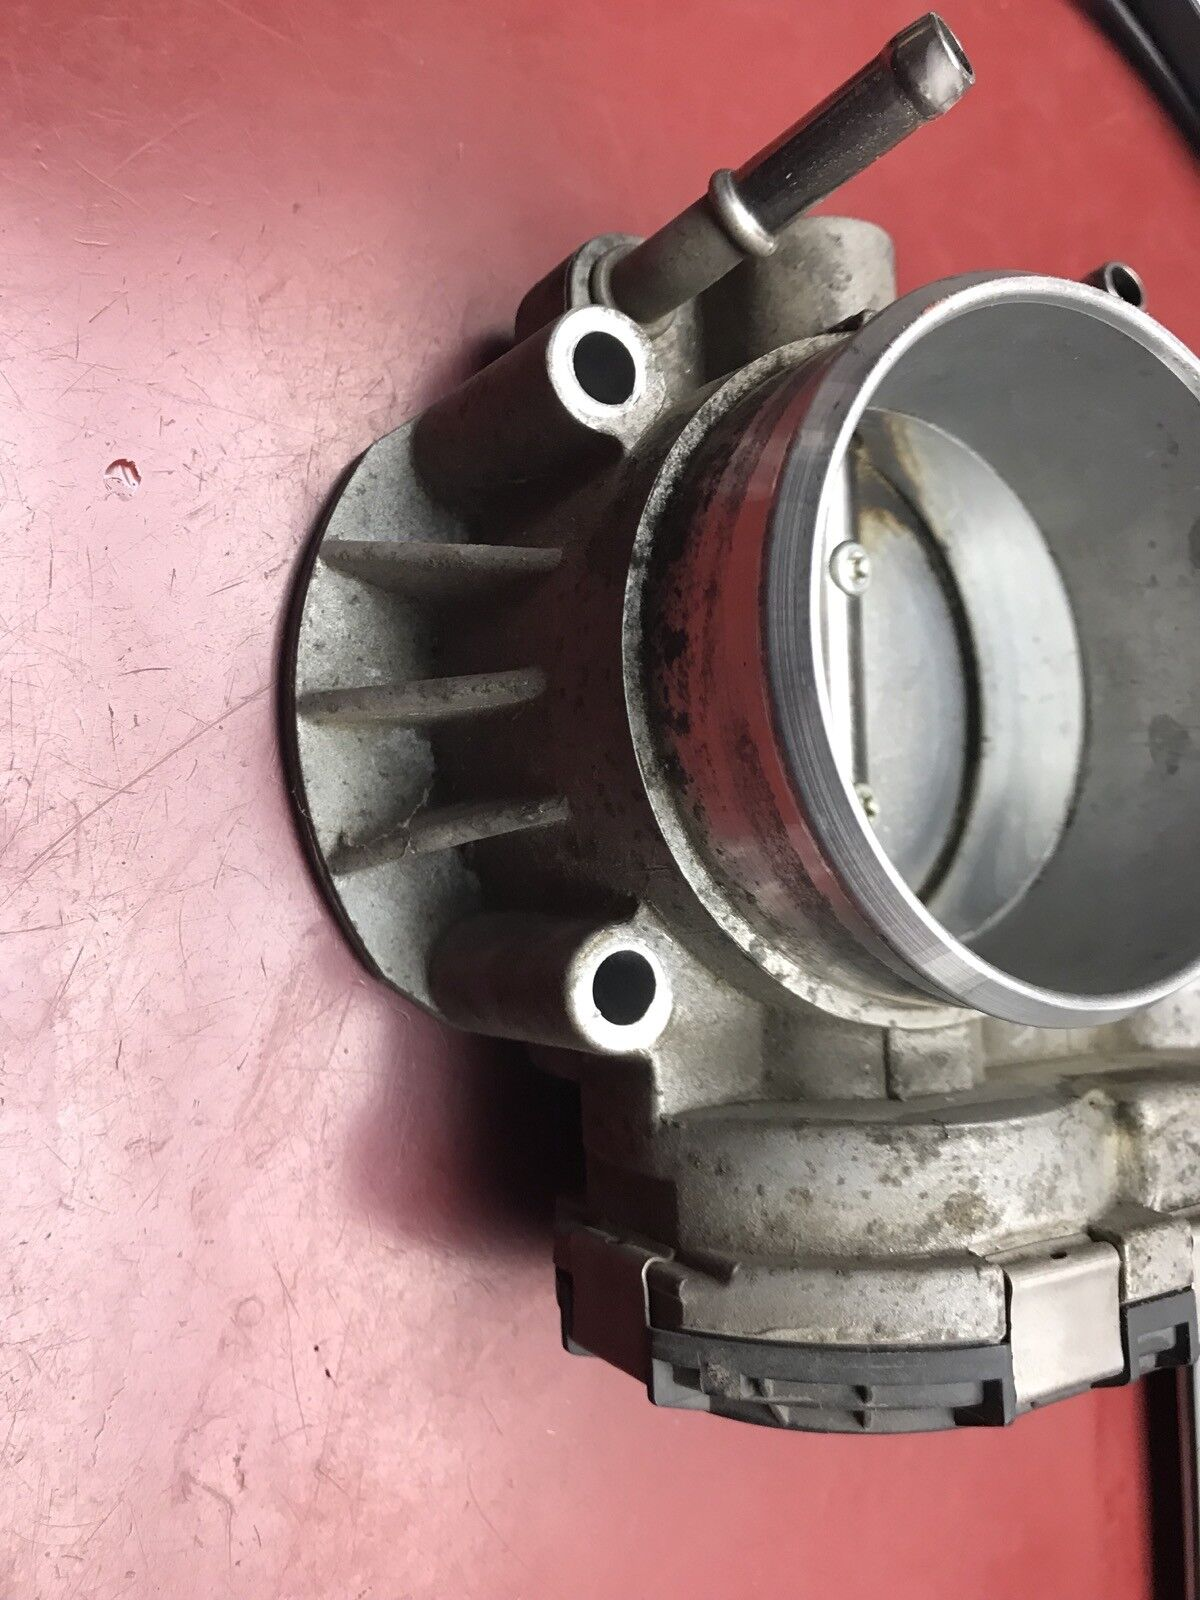 Used Hyundai Air Intake and Fuel Delivery Parts for Sale - Page 82